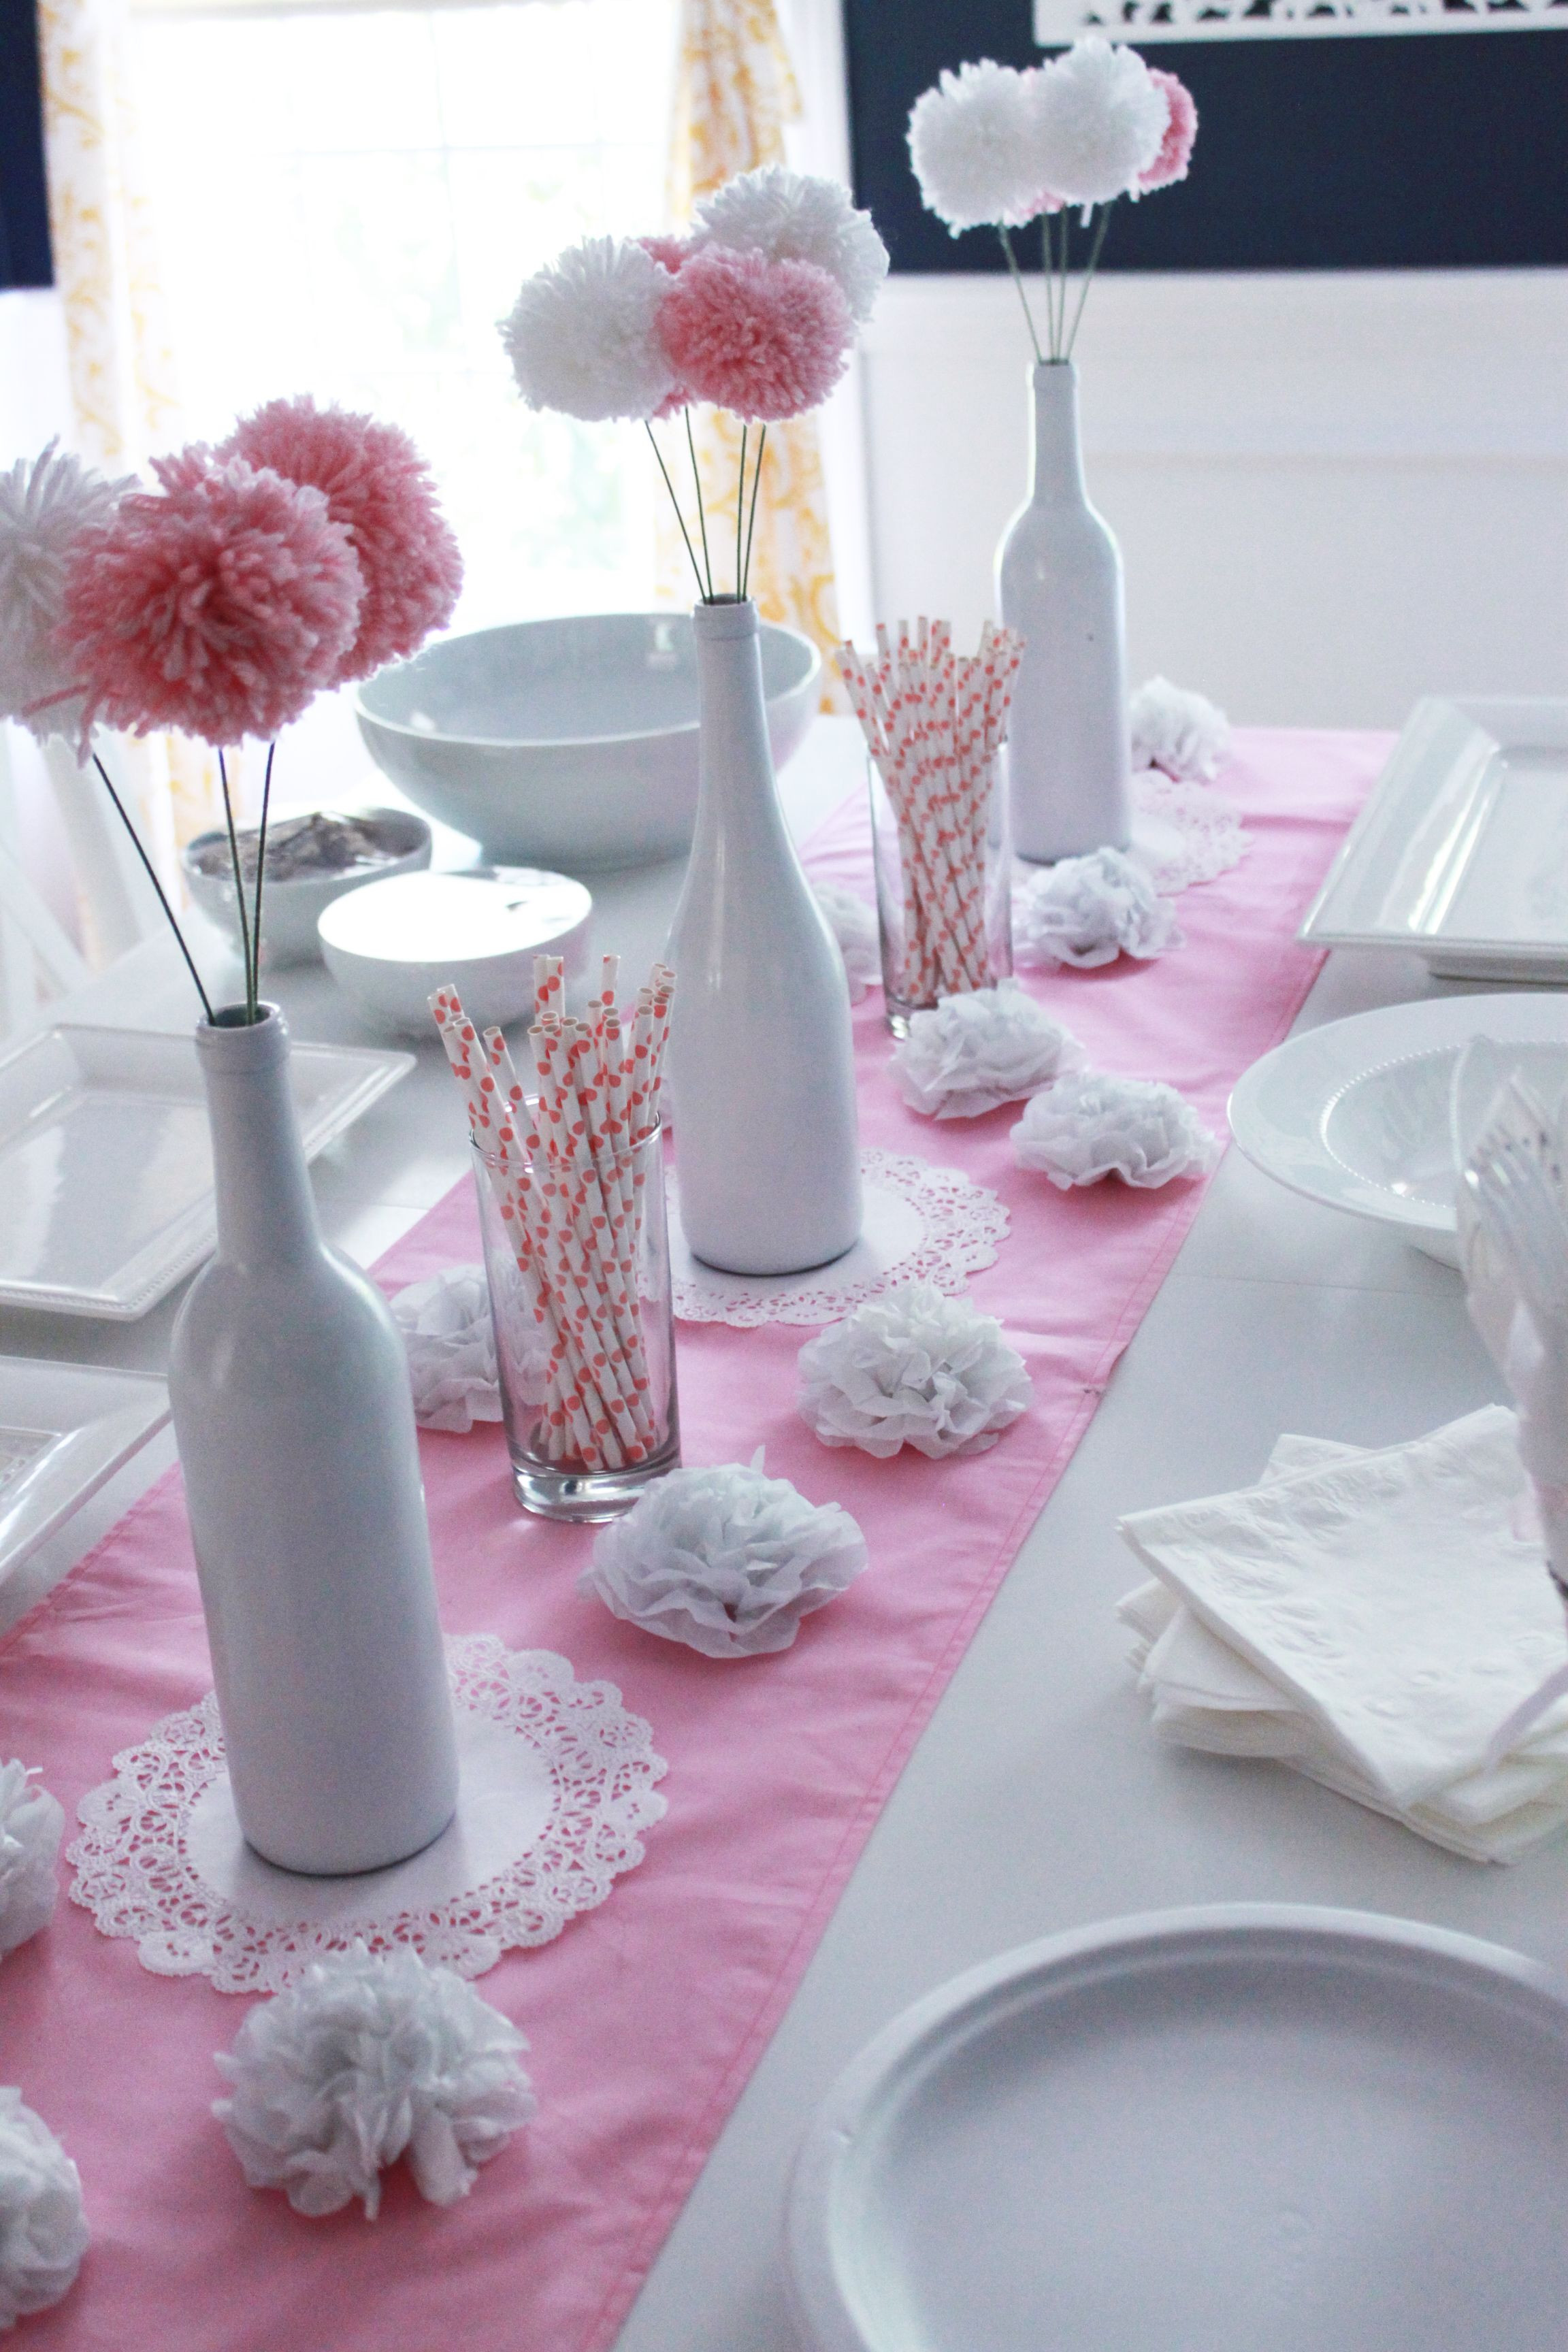 Best ideas about Baby Shower DIY Ideas . Save or Pin DIY Baby Shower Ideas for Girls Now.